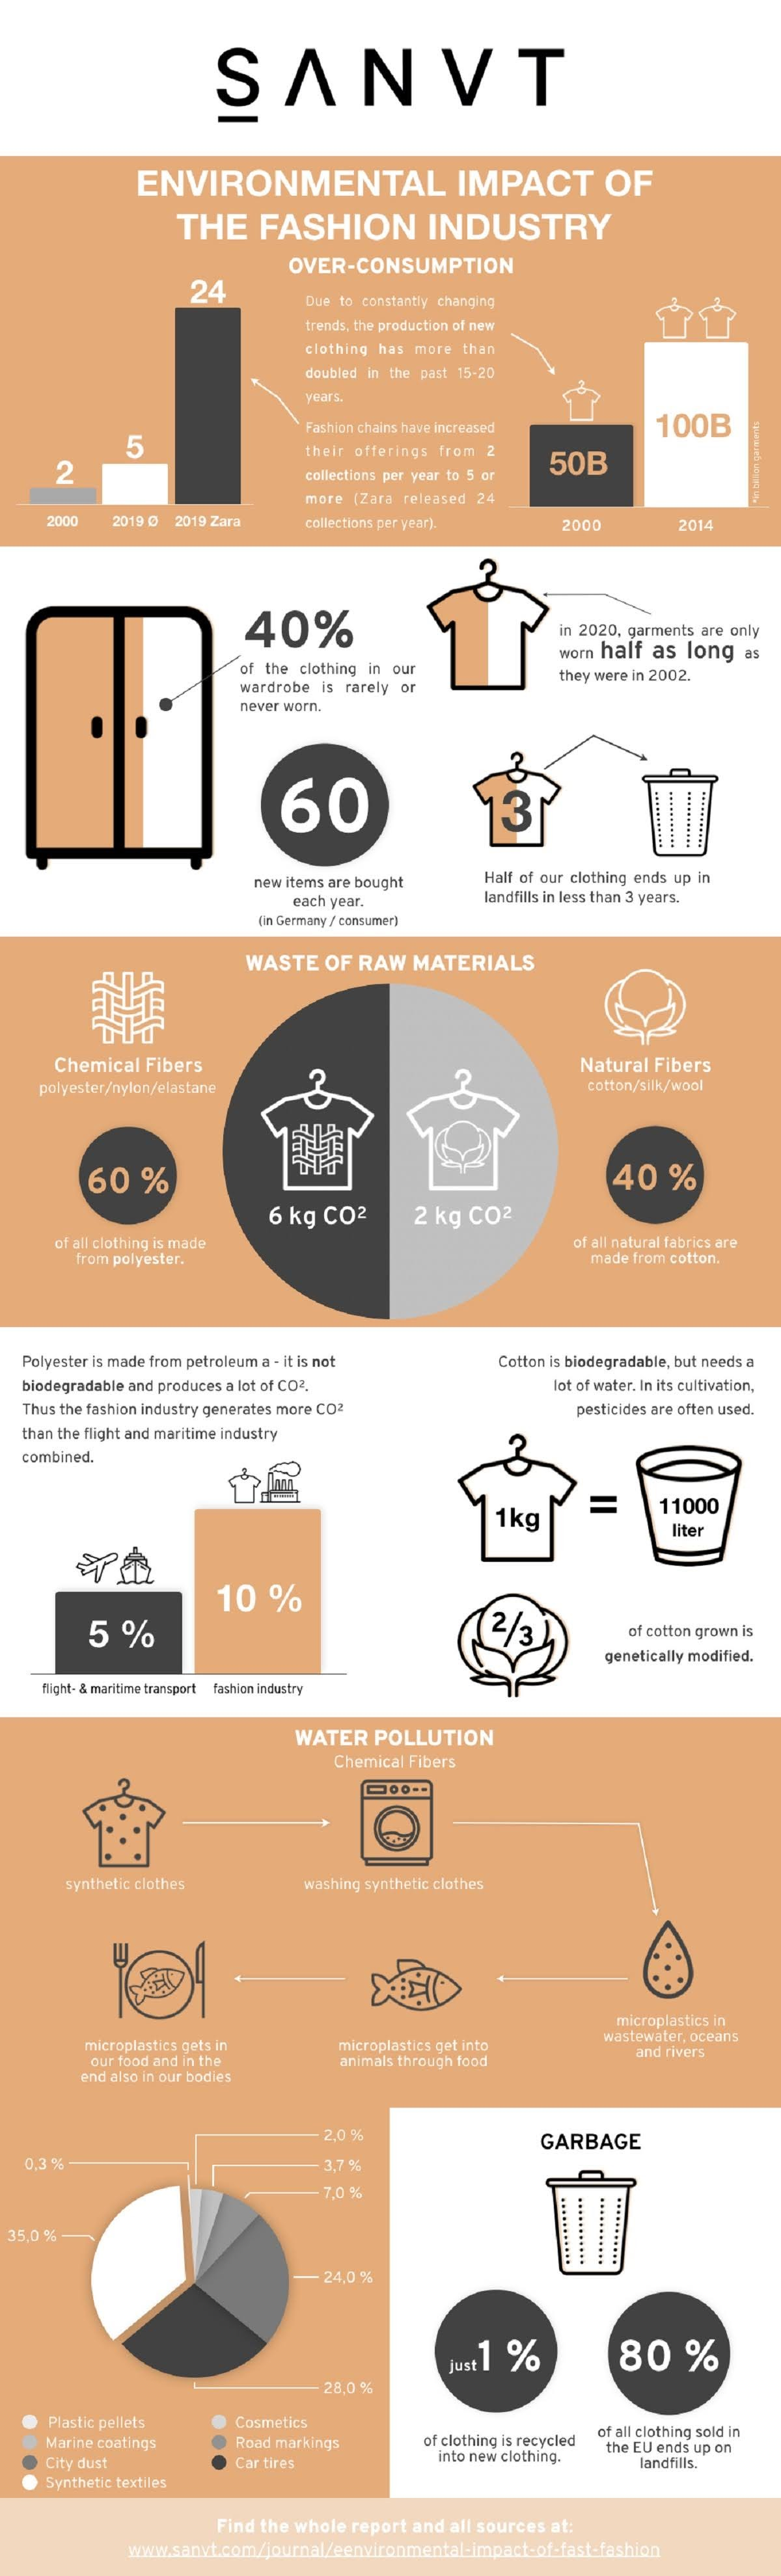 the-environmental-impact-of-the-fast-fashion-industry-infographic